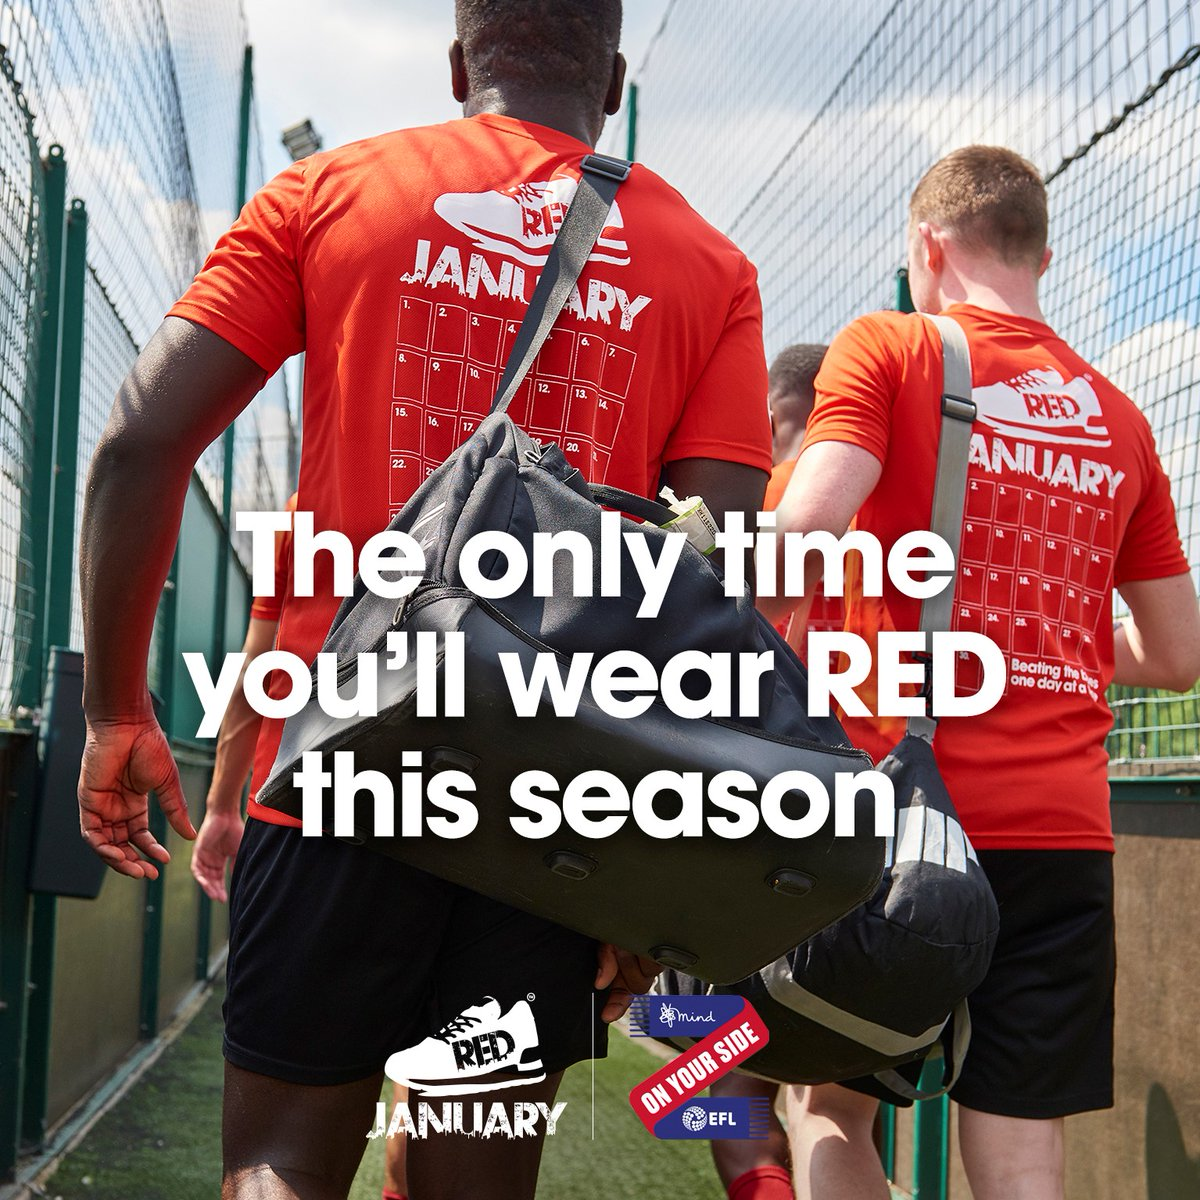 Bolton Wanderers are tackling mental health with @REDJanuaryUK this season. Register for FREE at football.redtogether.co.uk and get active every day in January to support @EFL's partner @MindCharity. #REDJanuary #OnYourSide #BWFC 🐘🏰